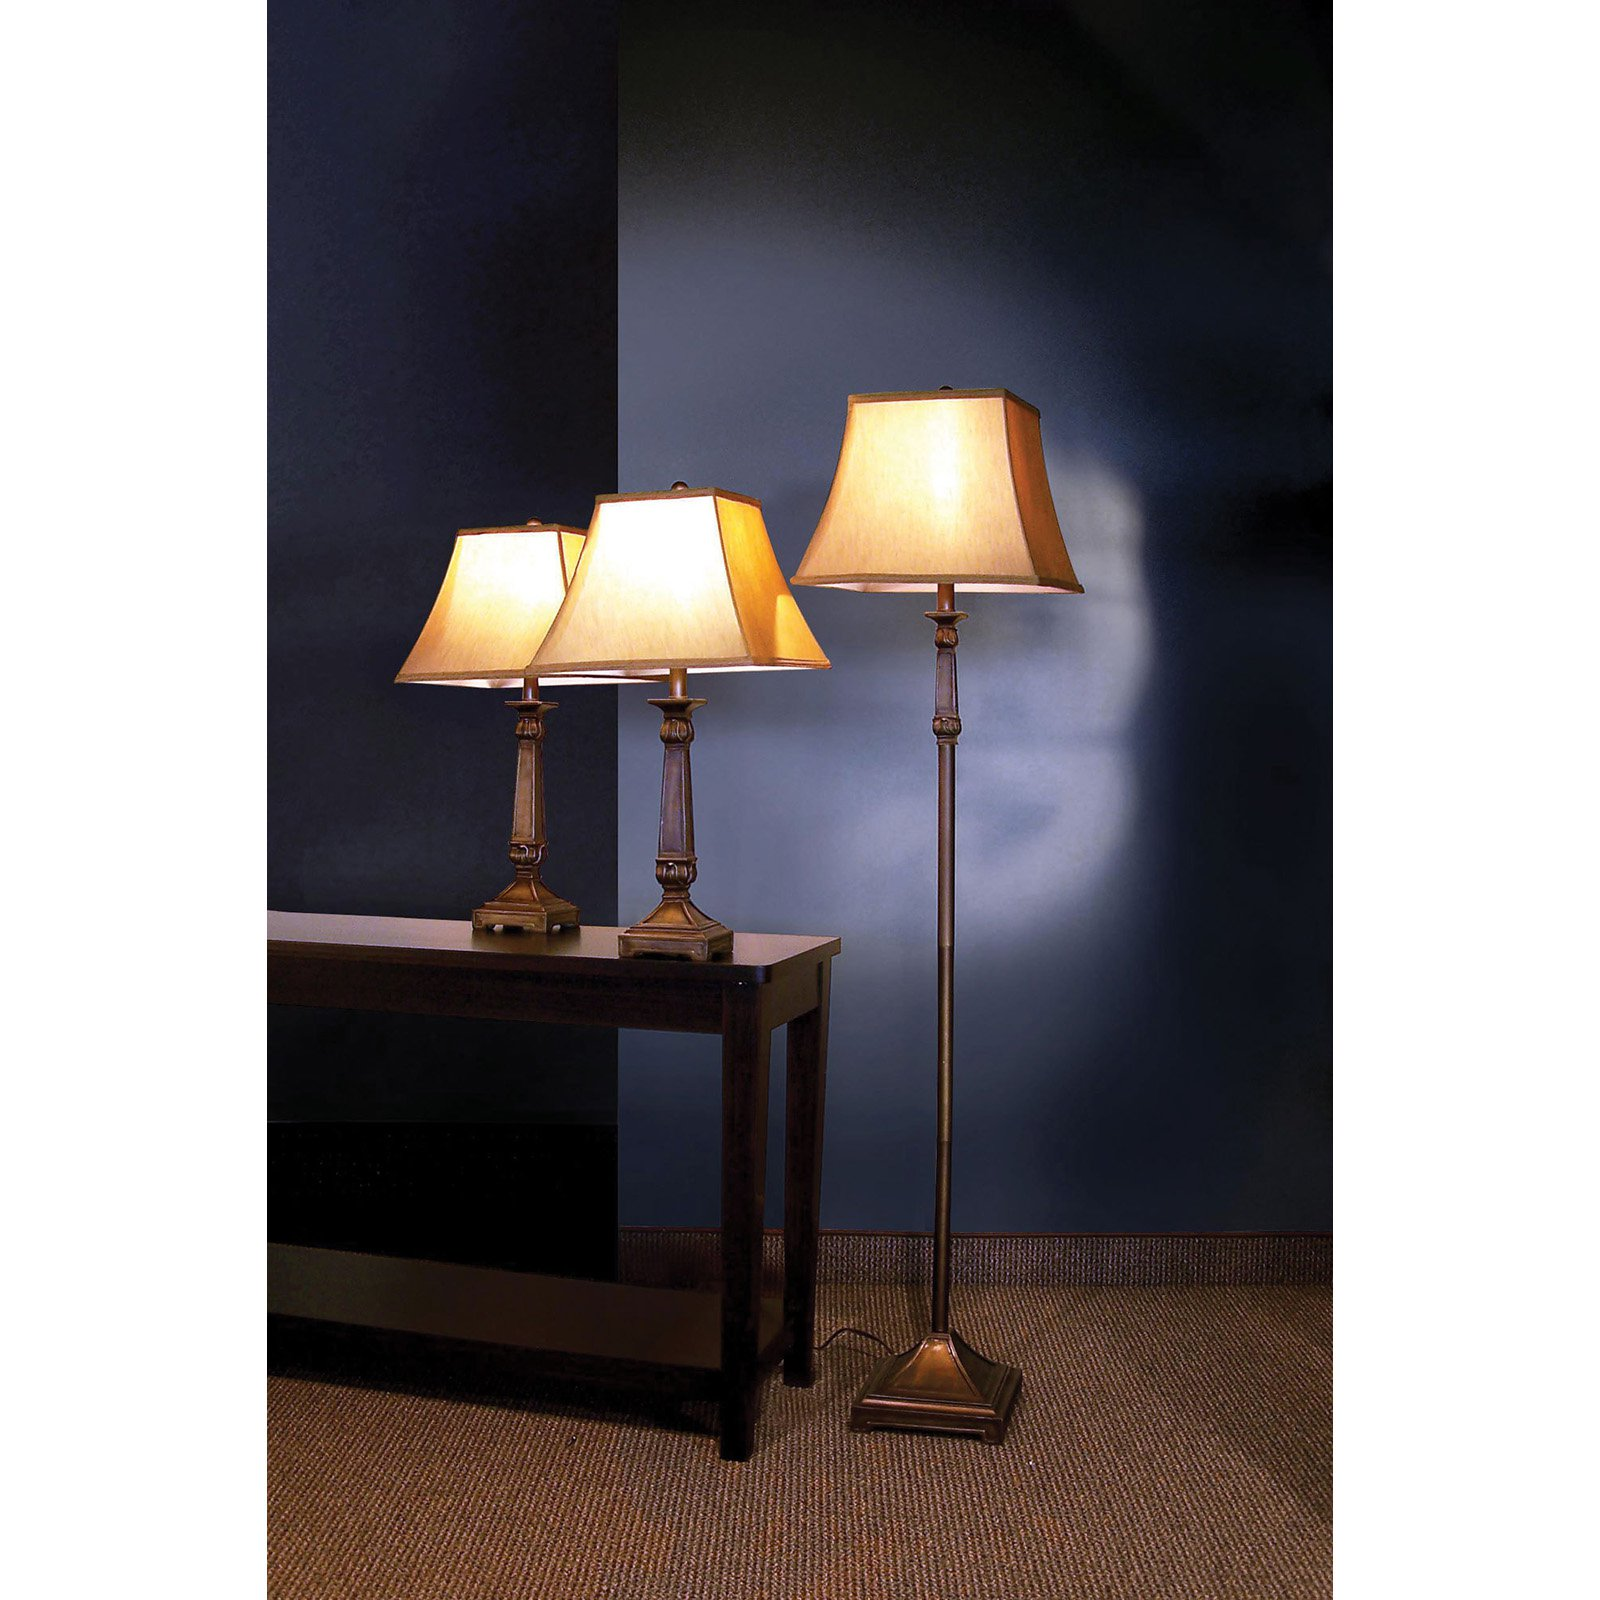 Coaster Company of America 901145 Three Piece Floor and Table Lamps